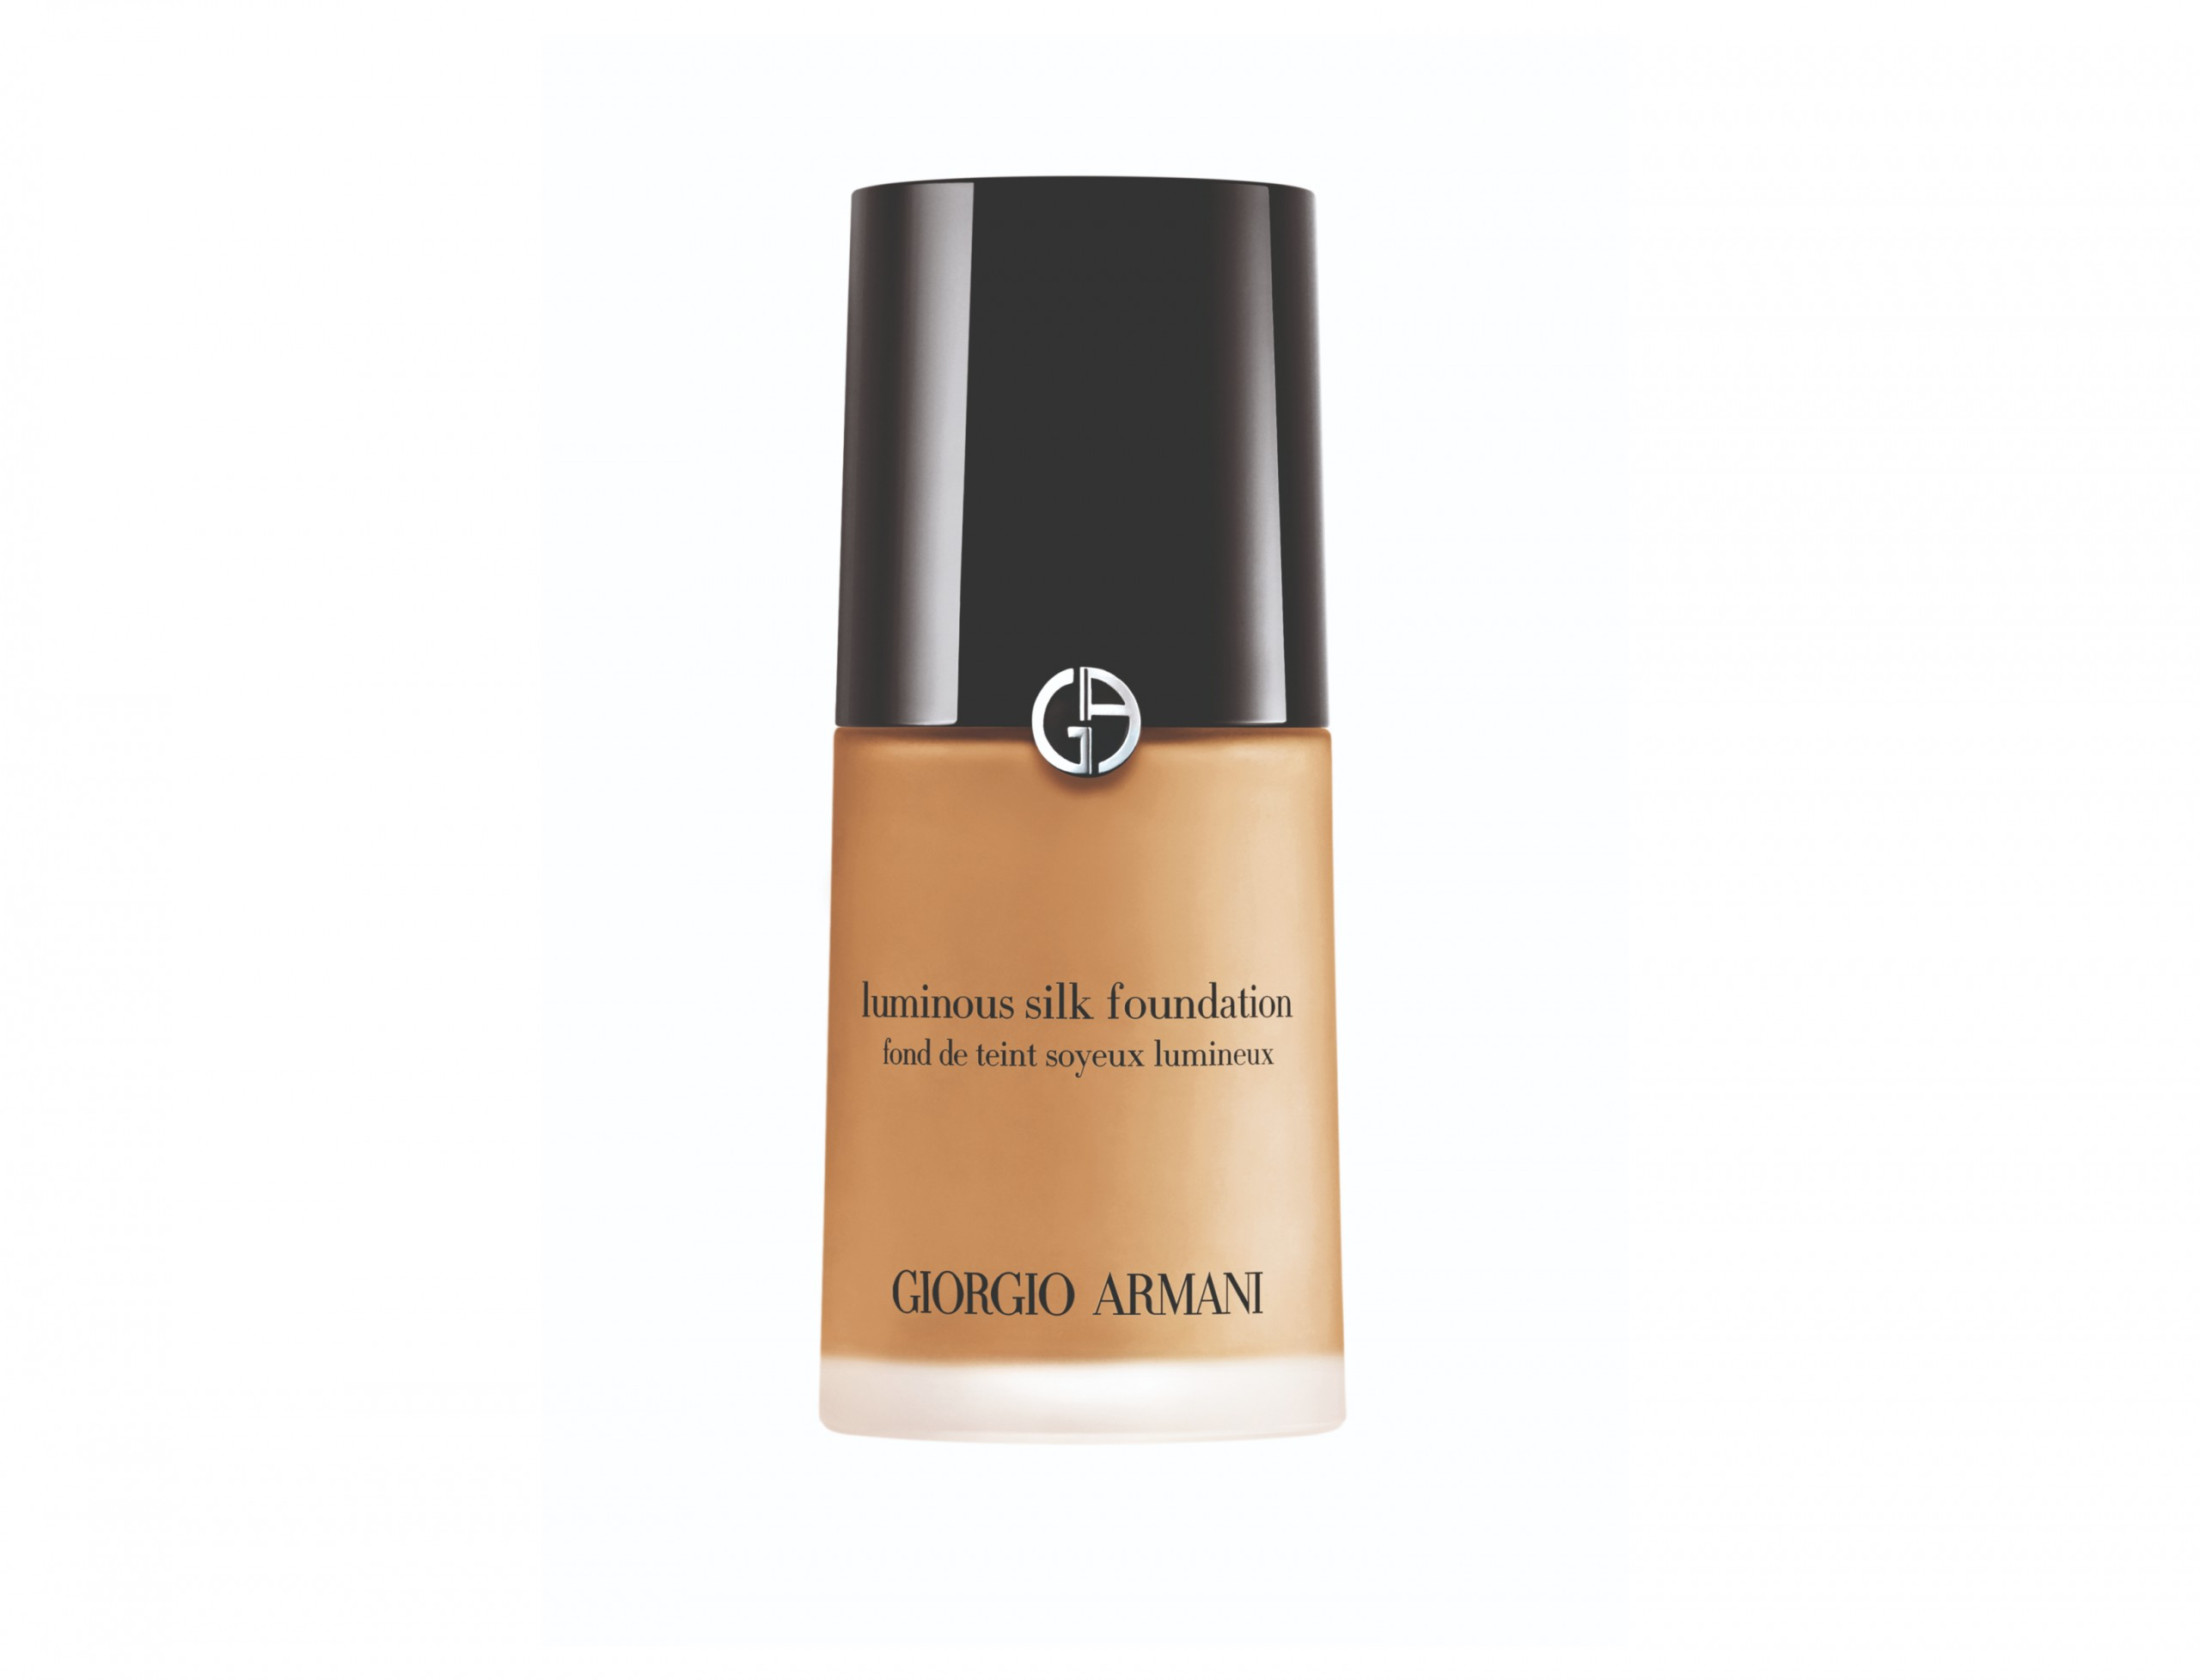 Giorgio Armani Luminous Silk Foundation viso abbronzato